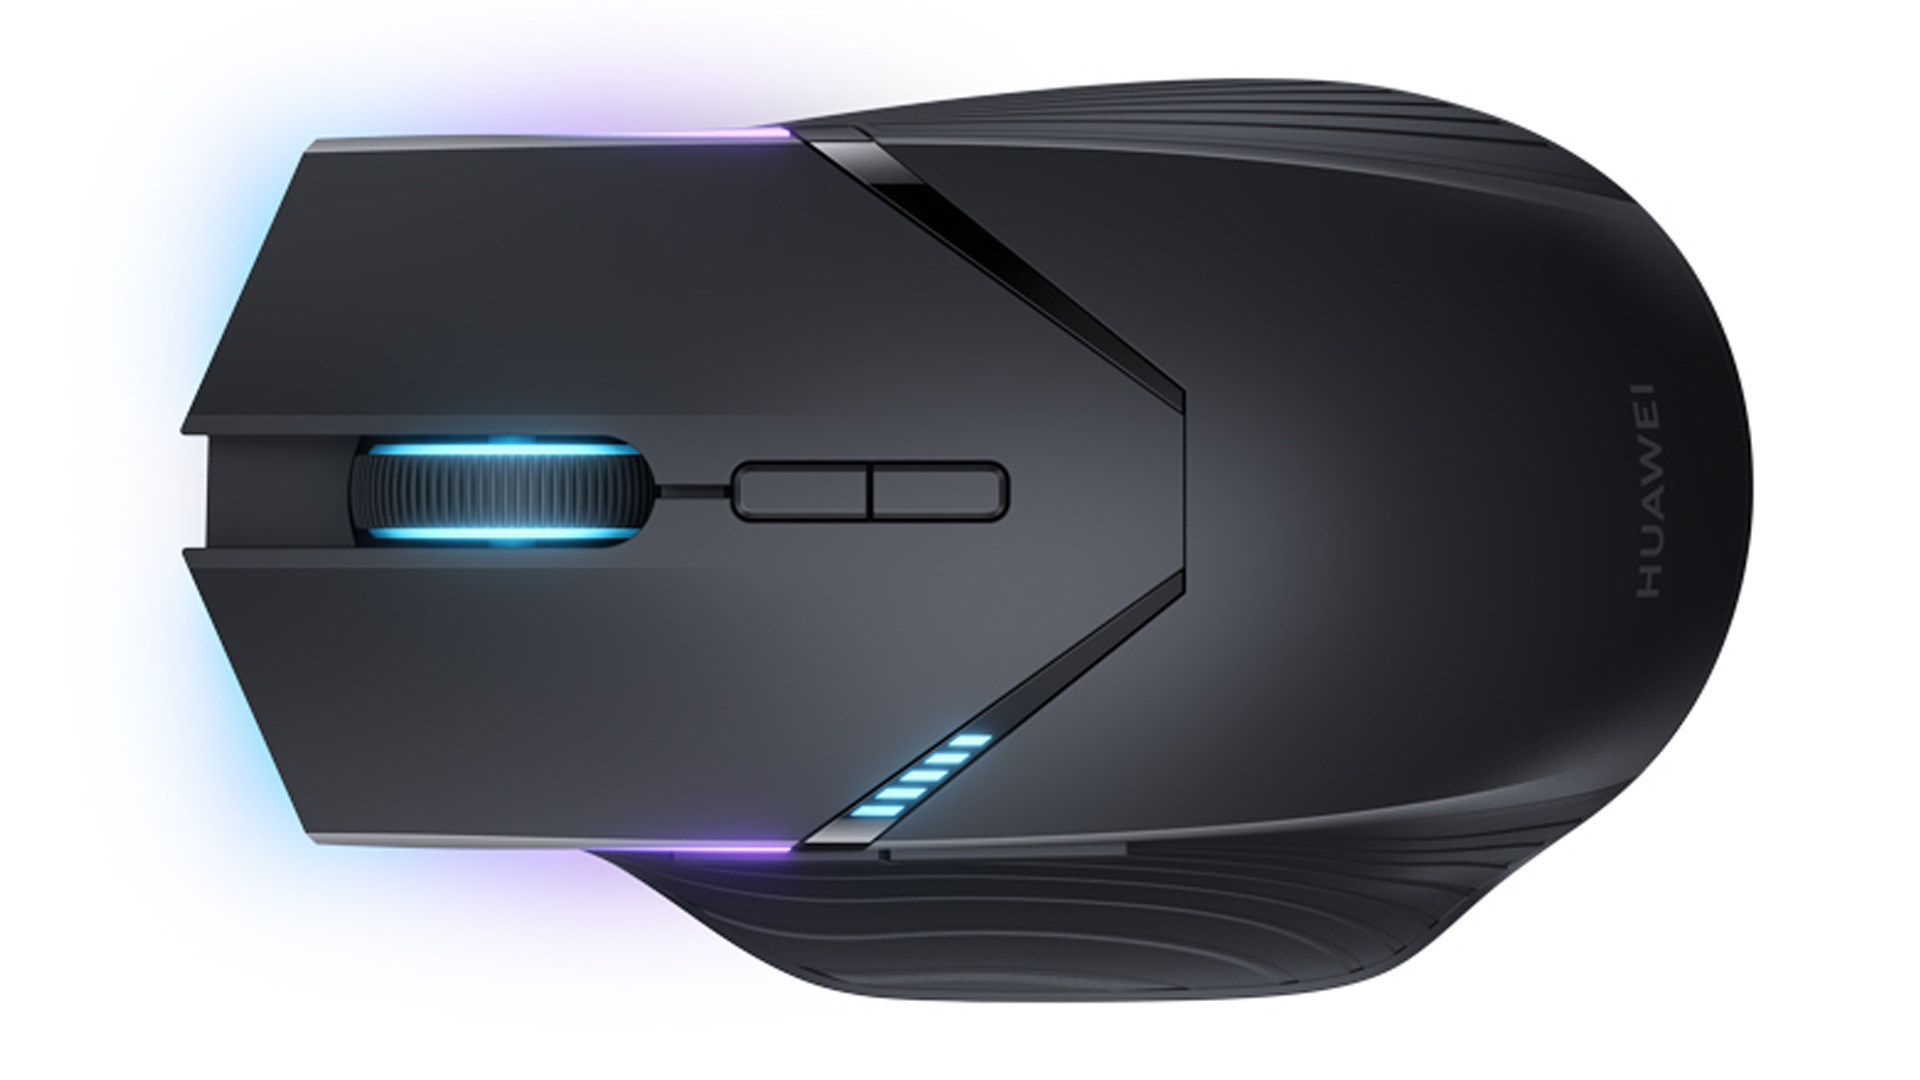 Gaming, Spiele, Games, Huawei, Maus, Gamer, Wireless Charging, Led, Mouse, Qi, Huawei Mouse GT, Huawei Wireless Mouse GT